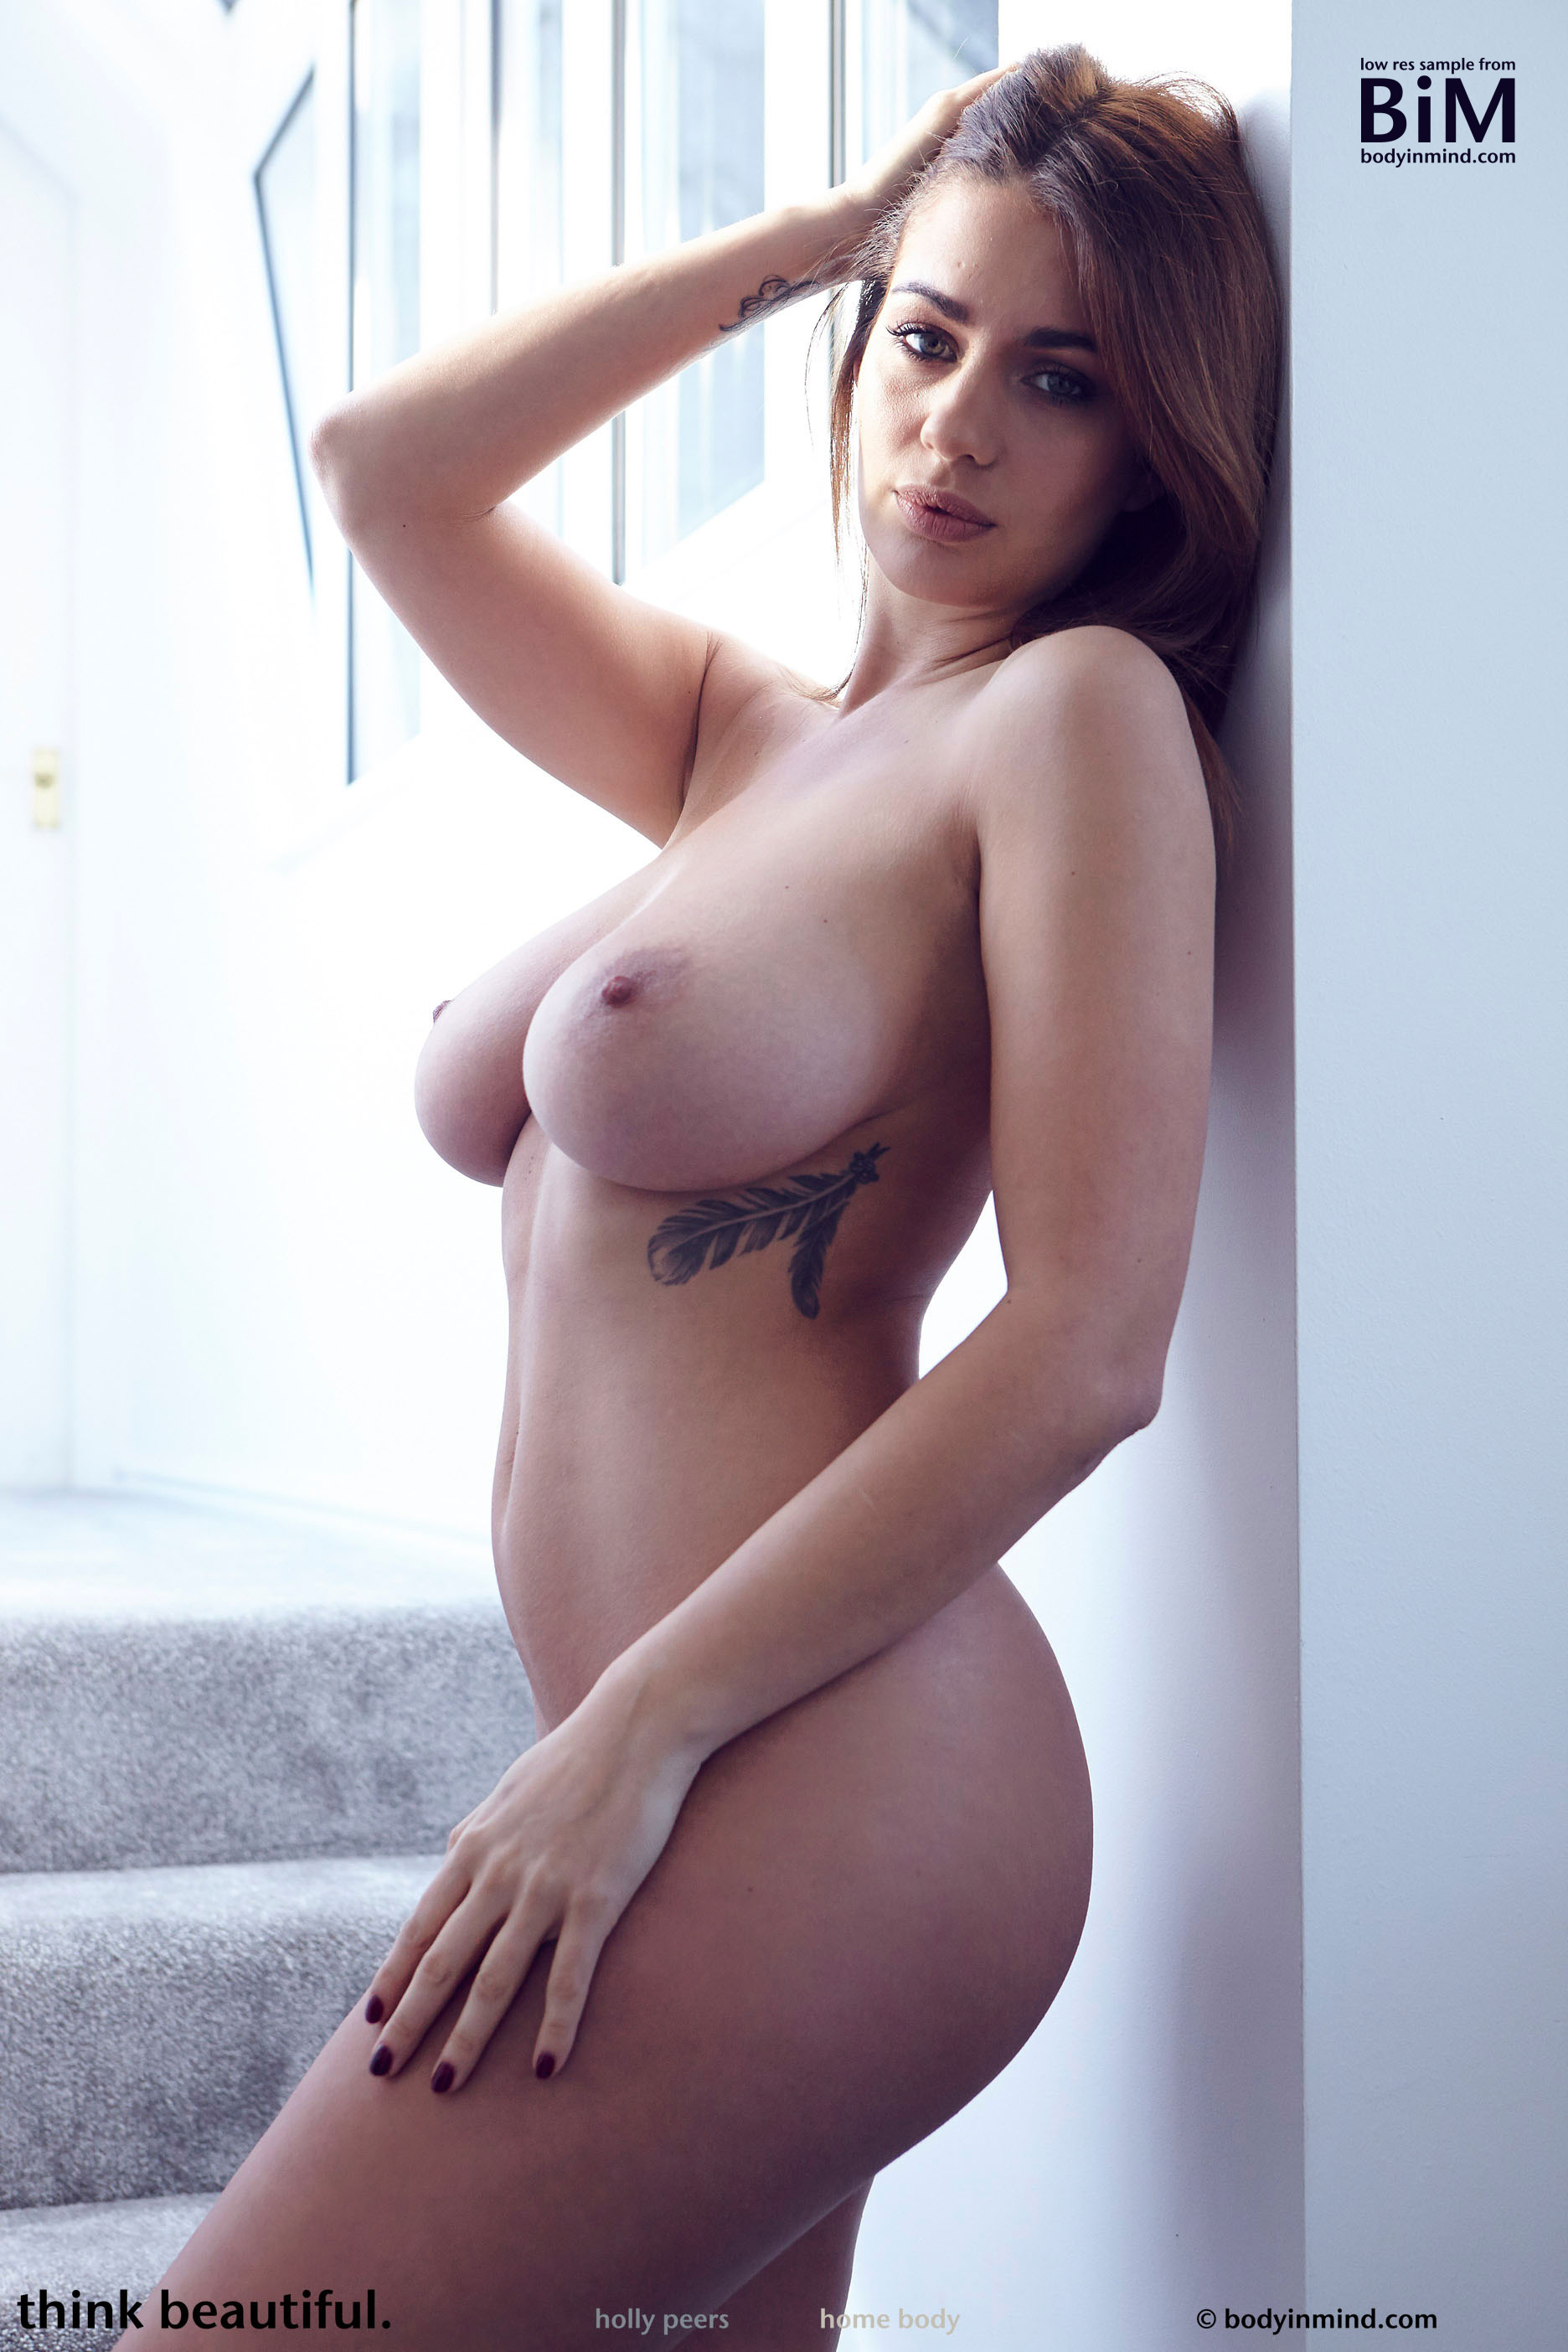 Holly Peers: Body in Mind's Gallery of the Week